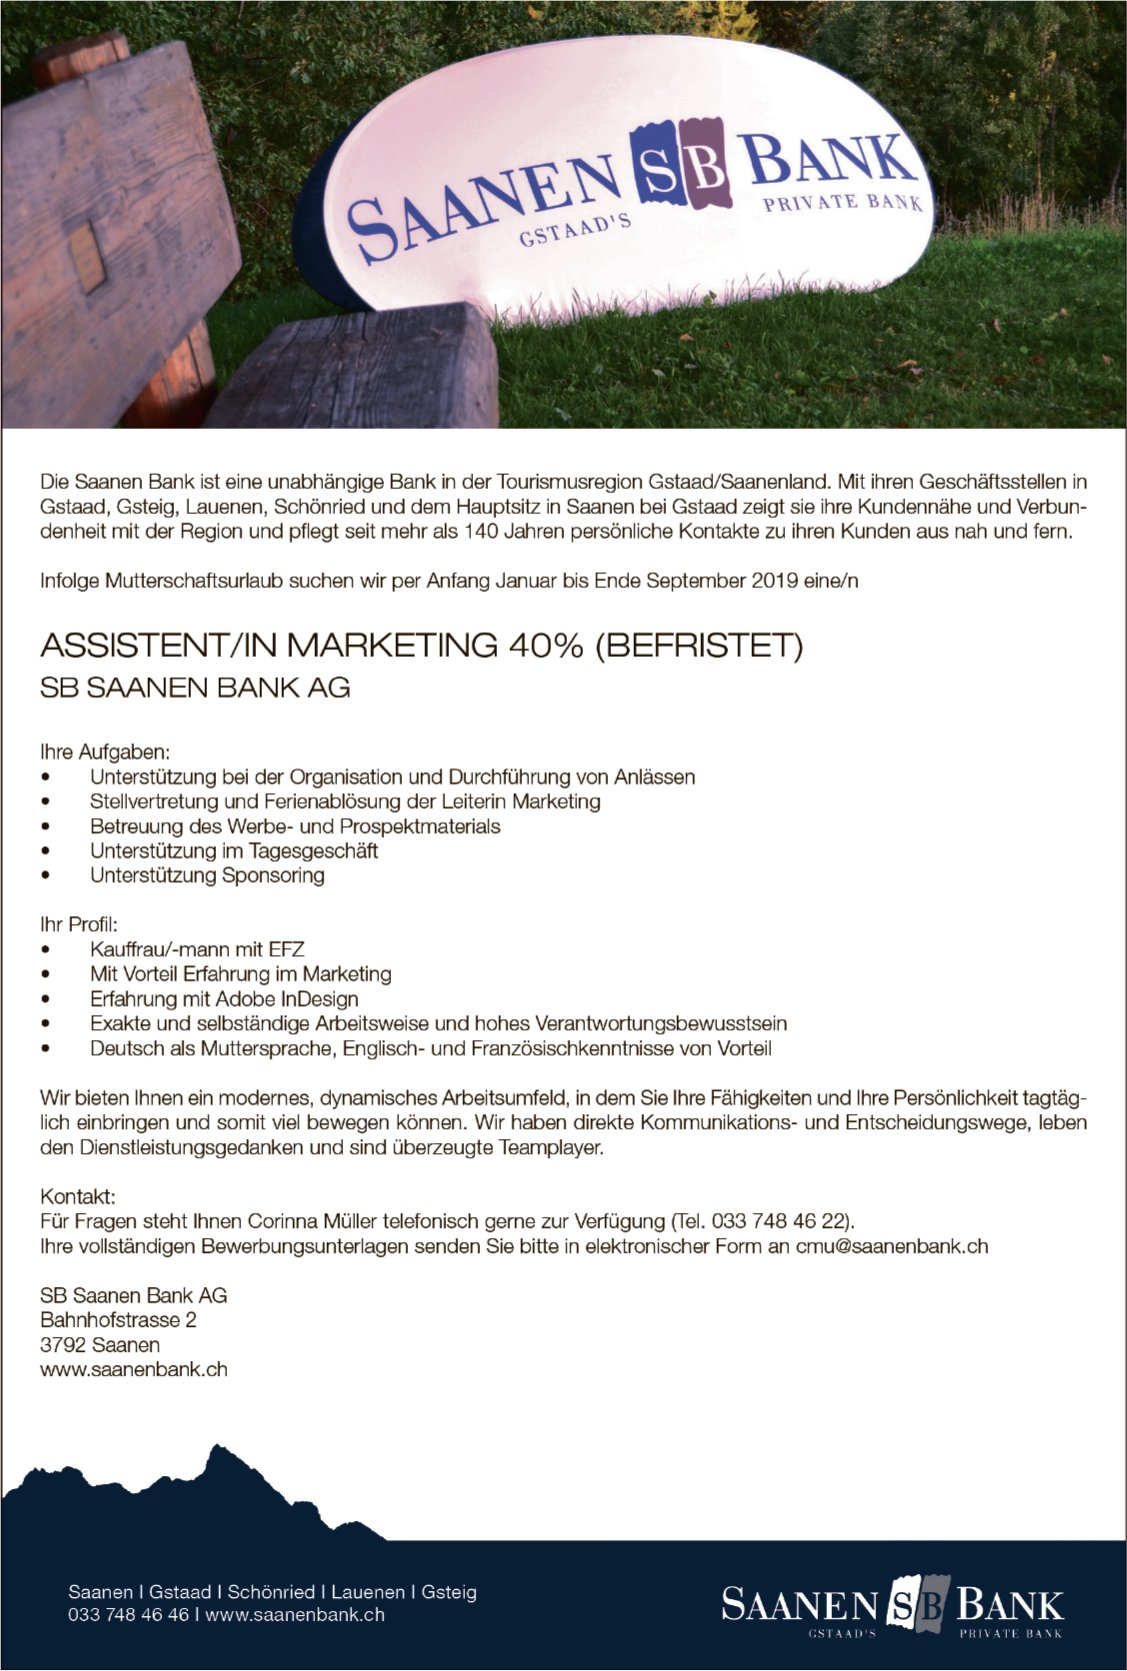 Assistent/in Marketing 40%, SB Saanen Bank AG